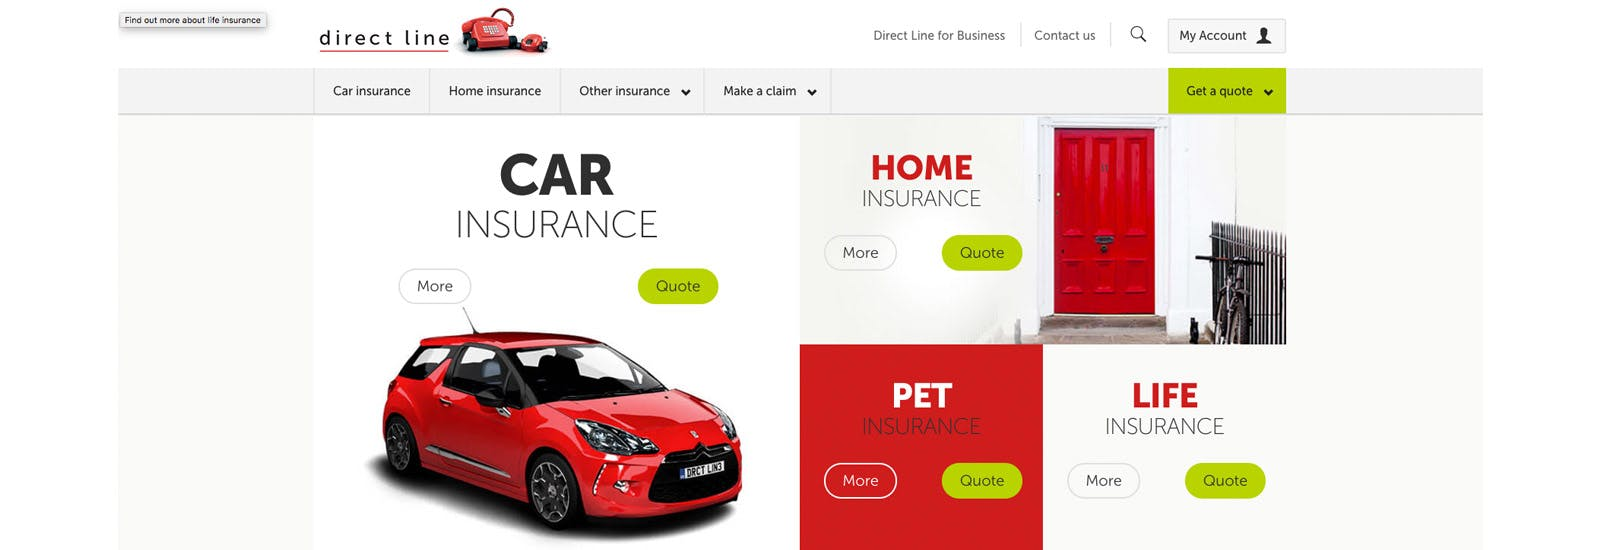 What are the best car insurance companies? | carwow